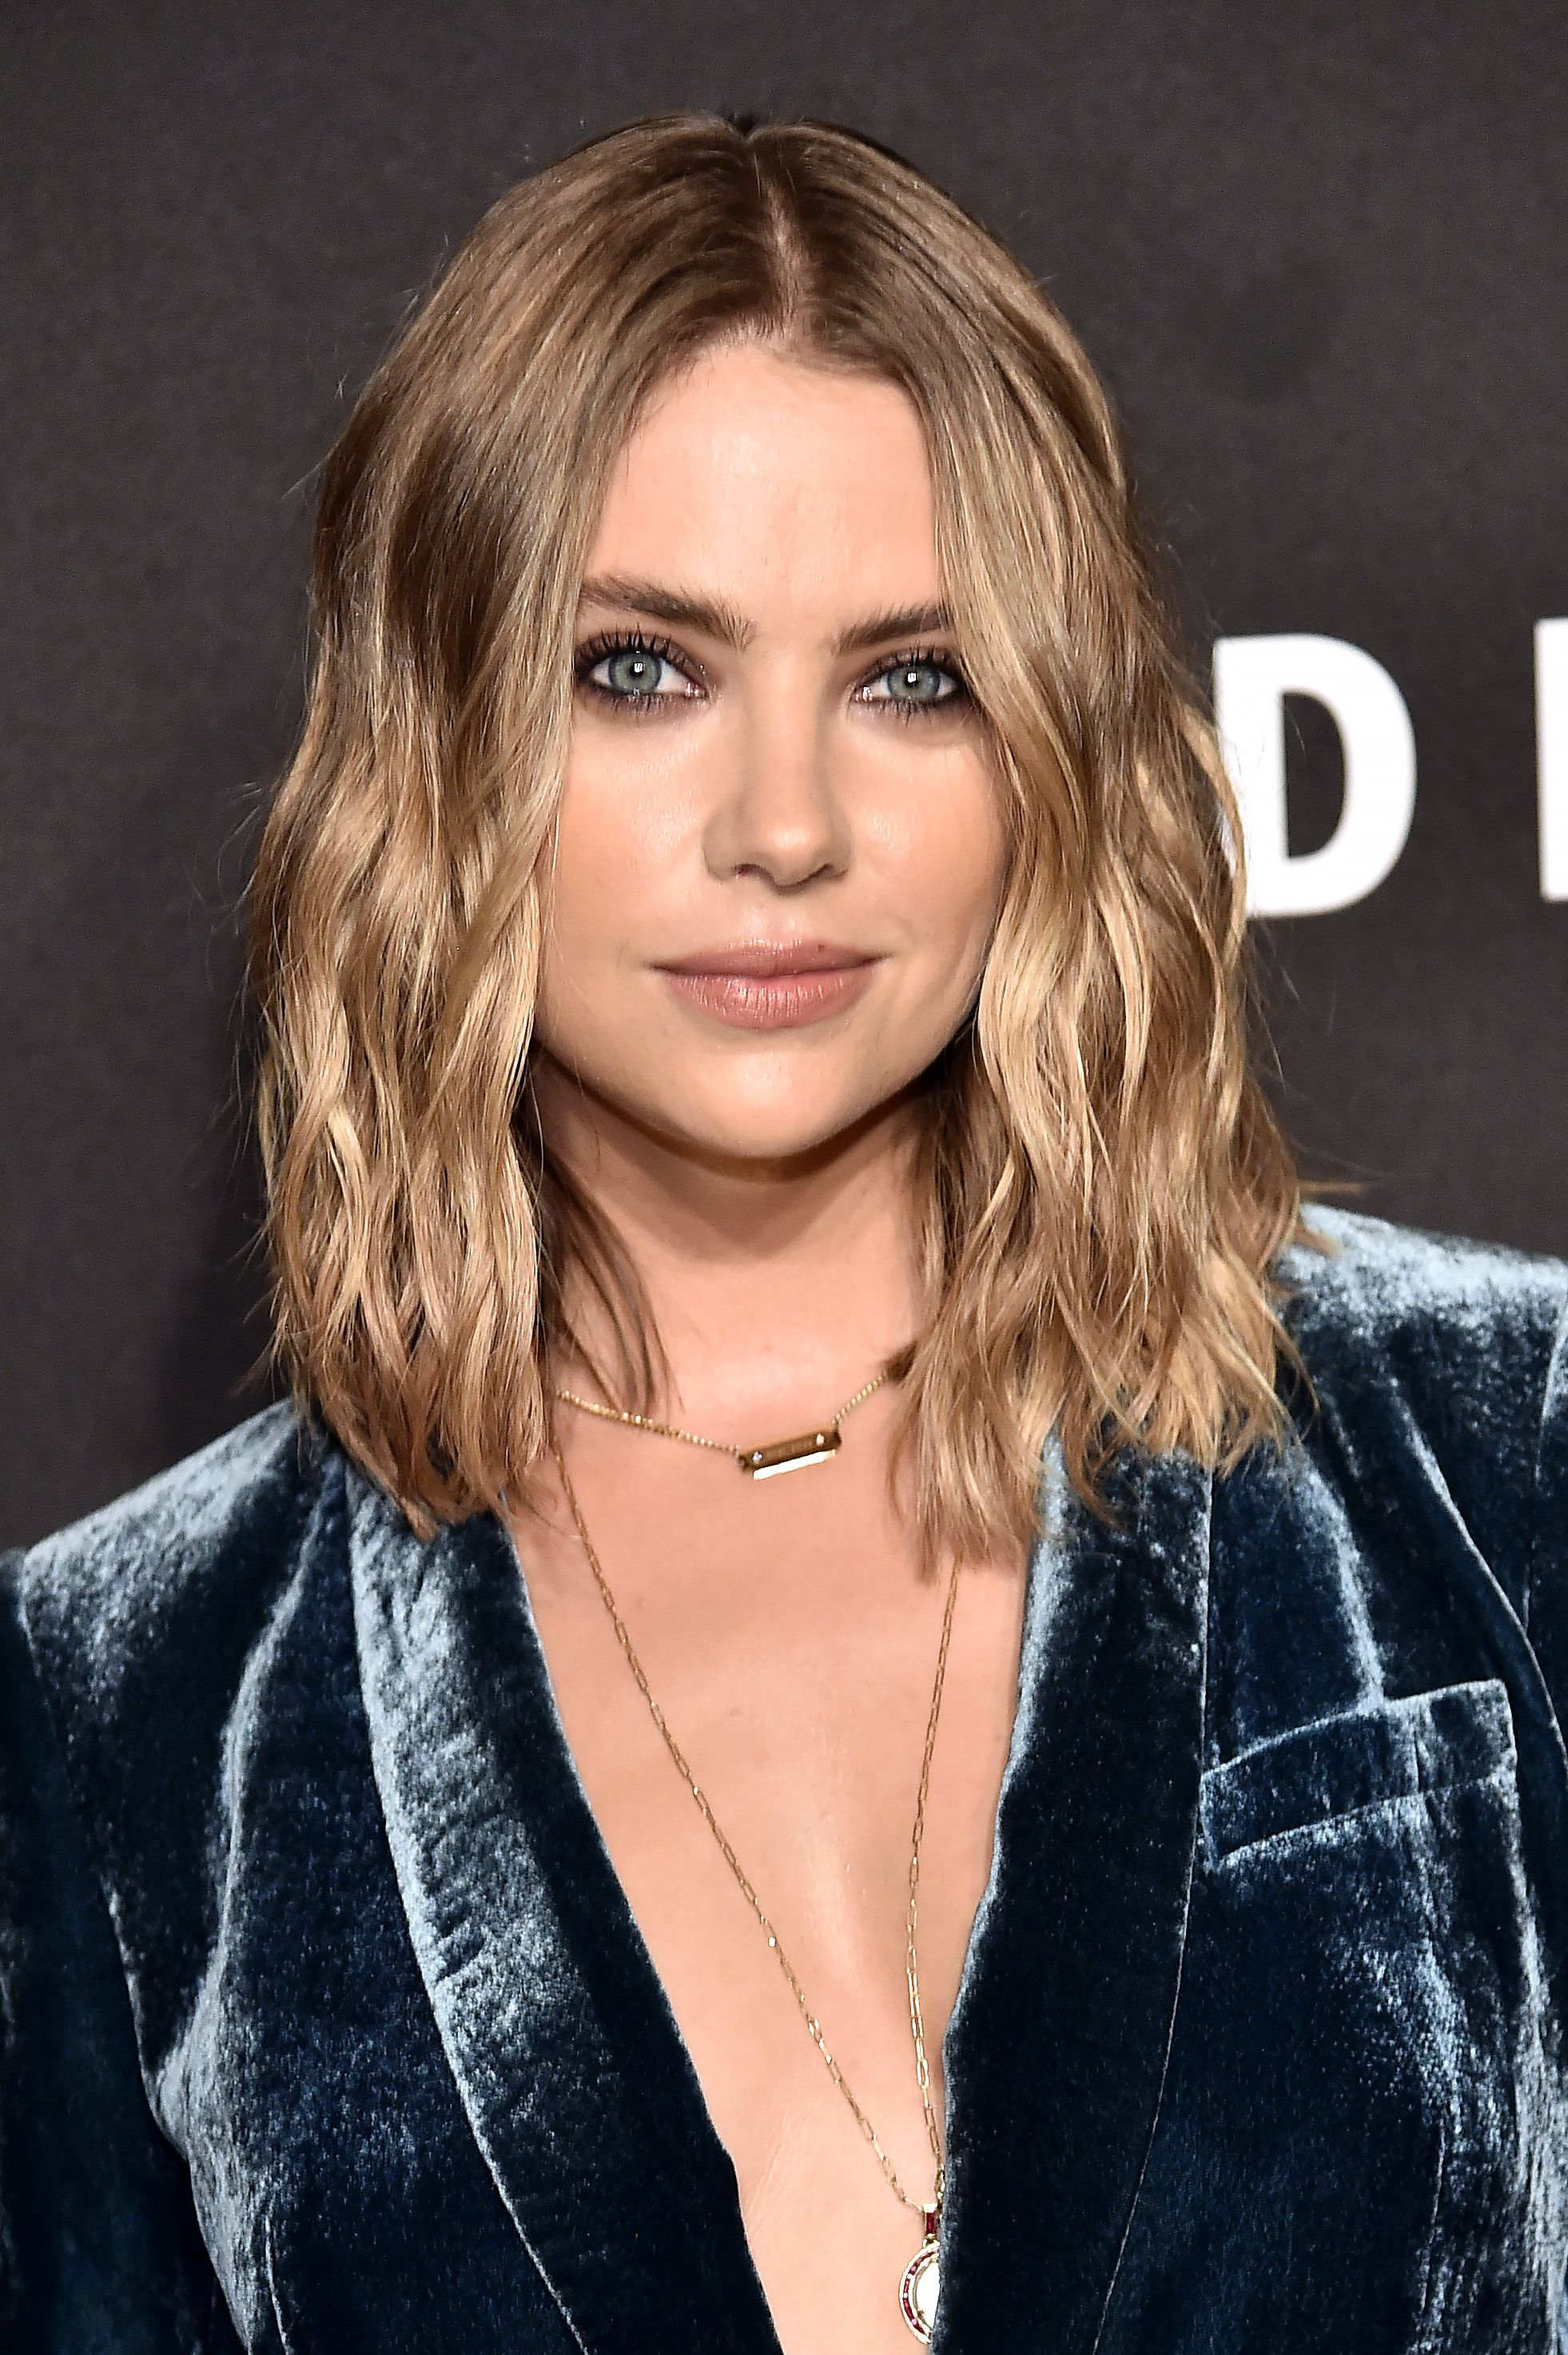 50 Best Short Hairstyles For Women Short Haircuts And Ideas For 2021